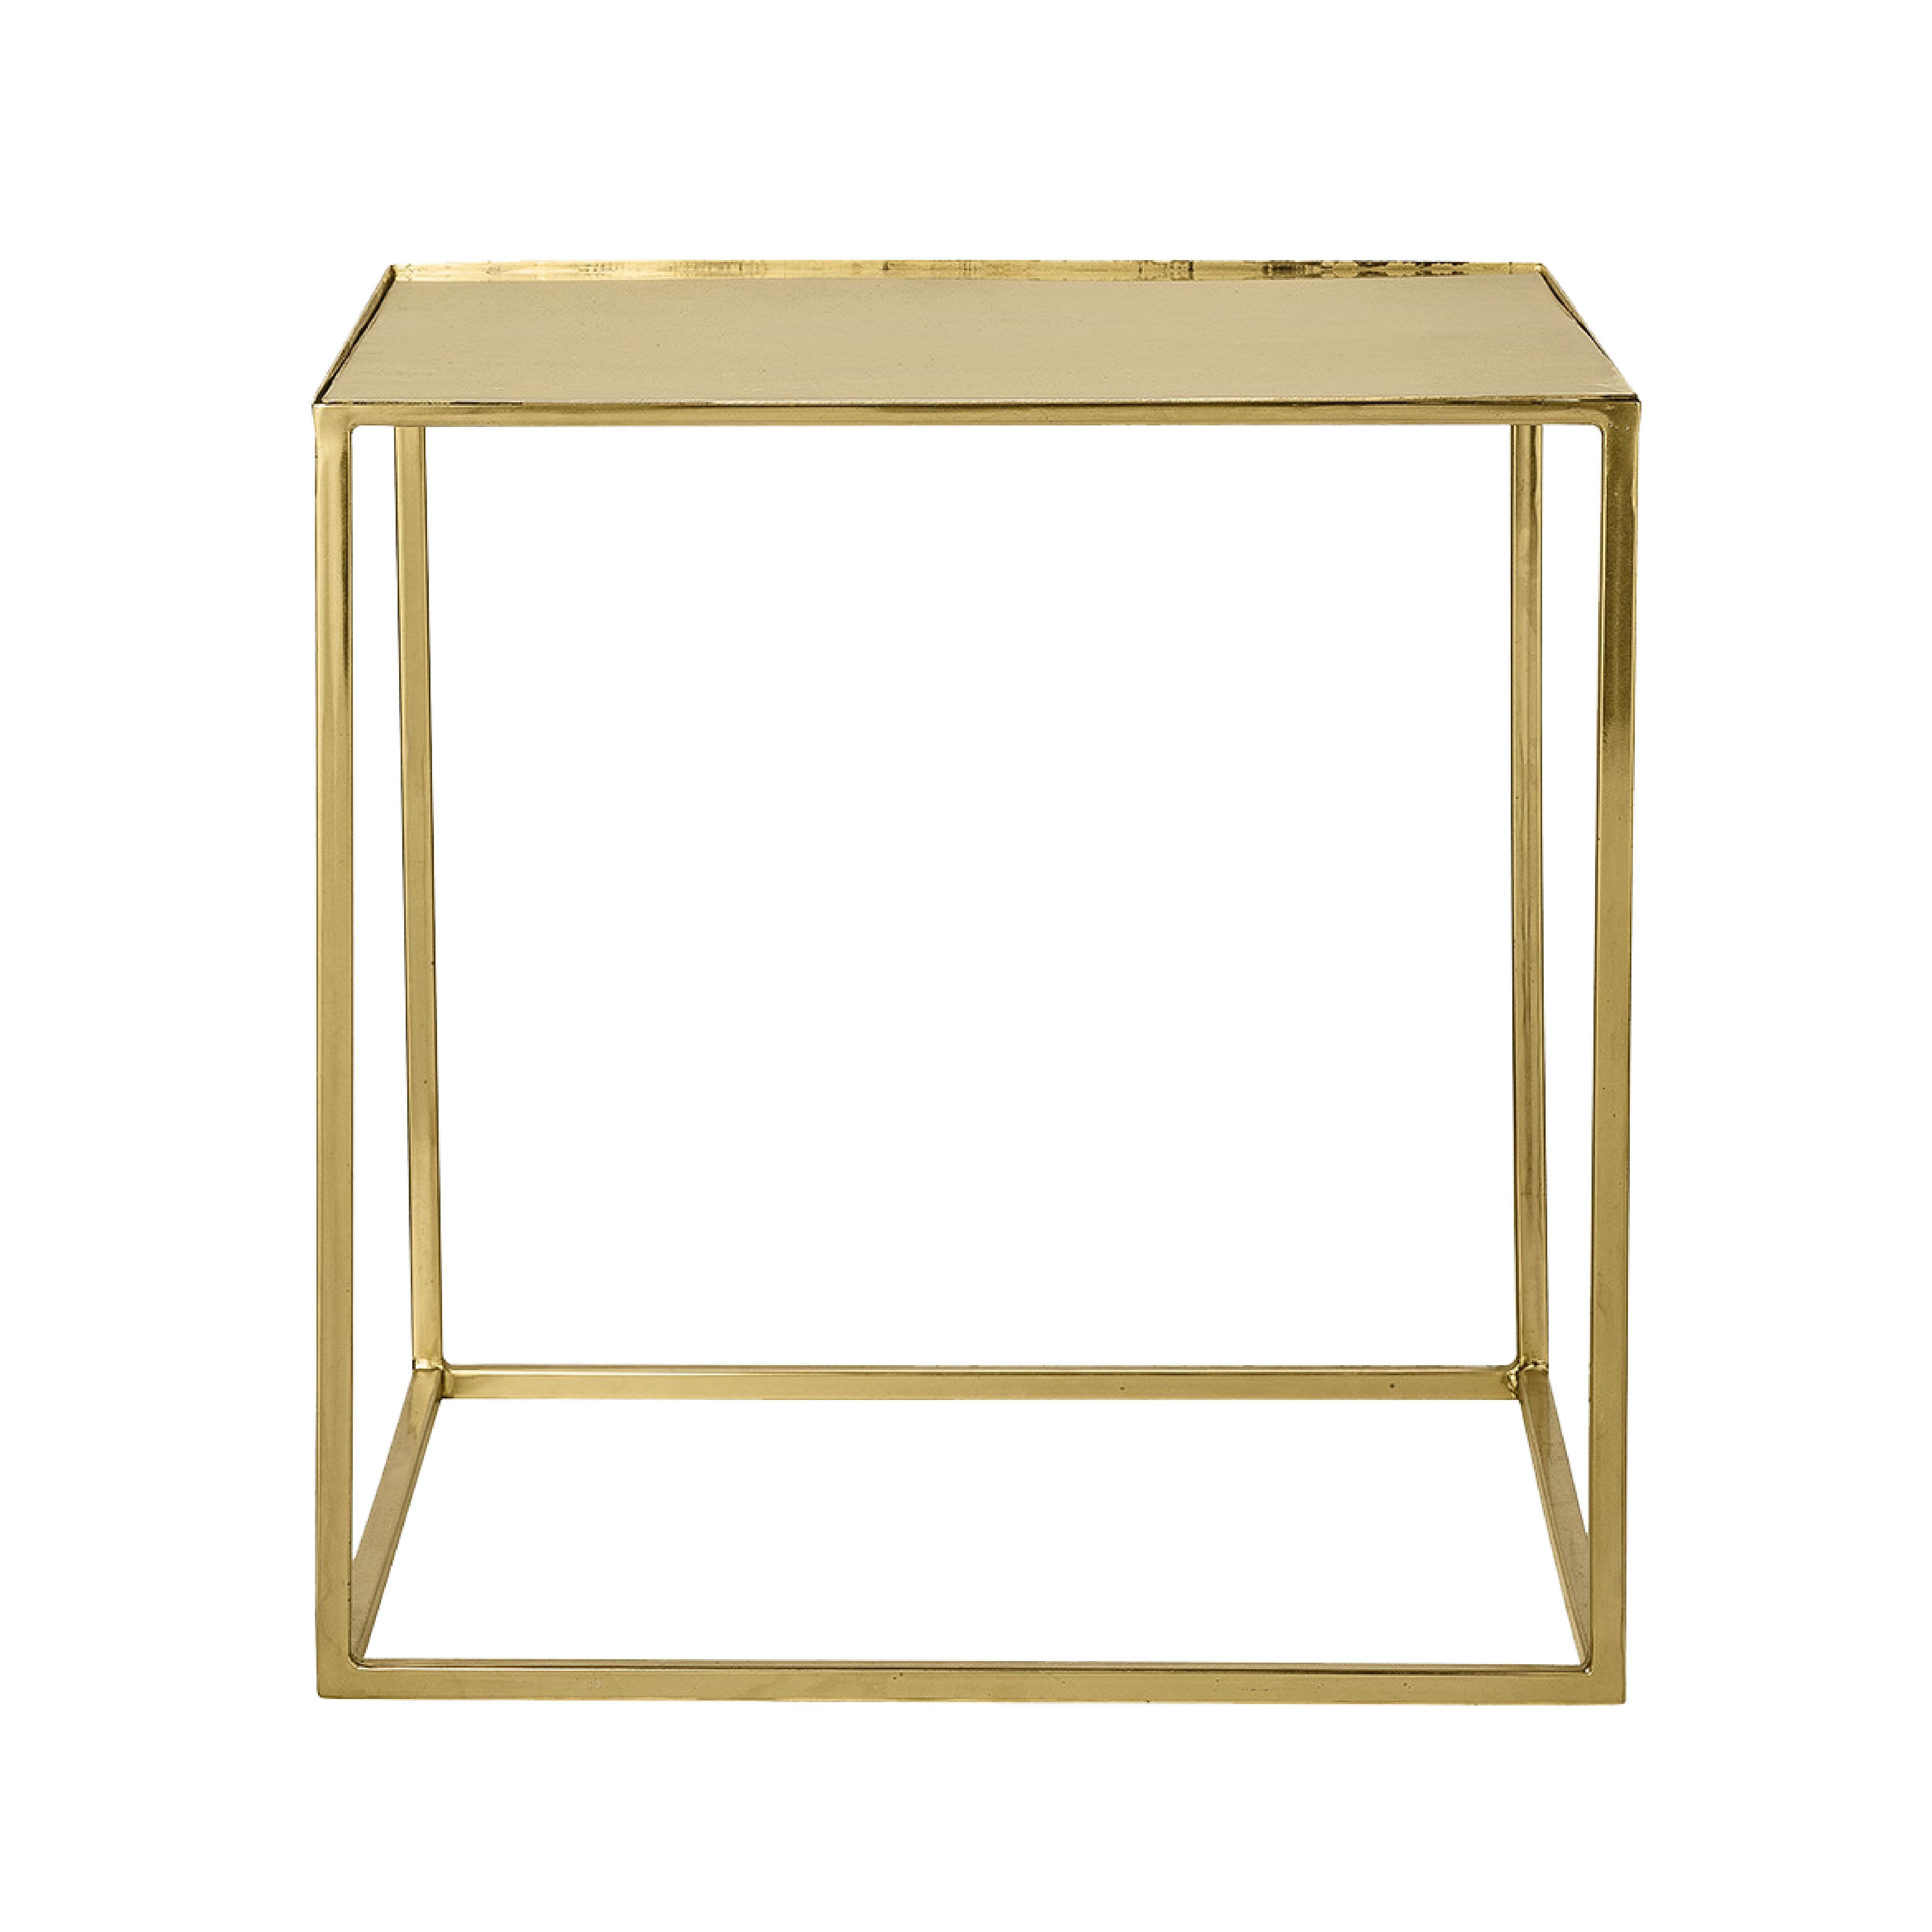 Cube side table in gold